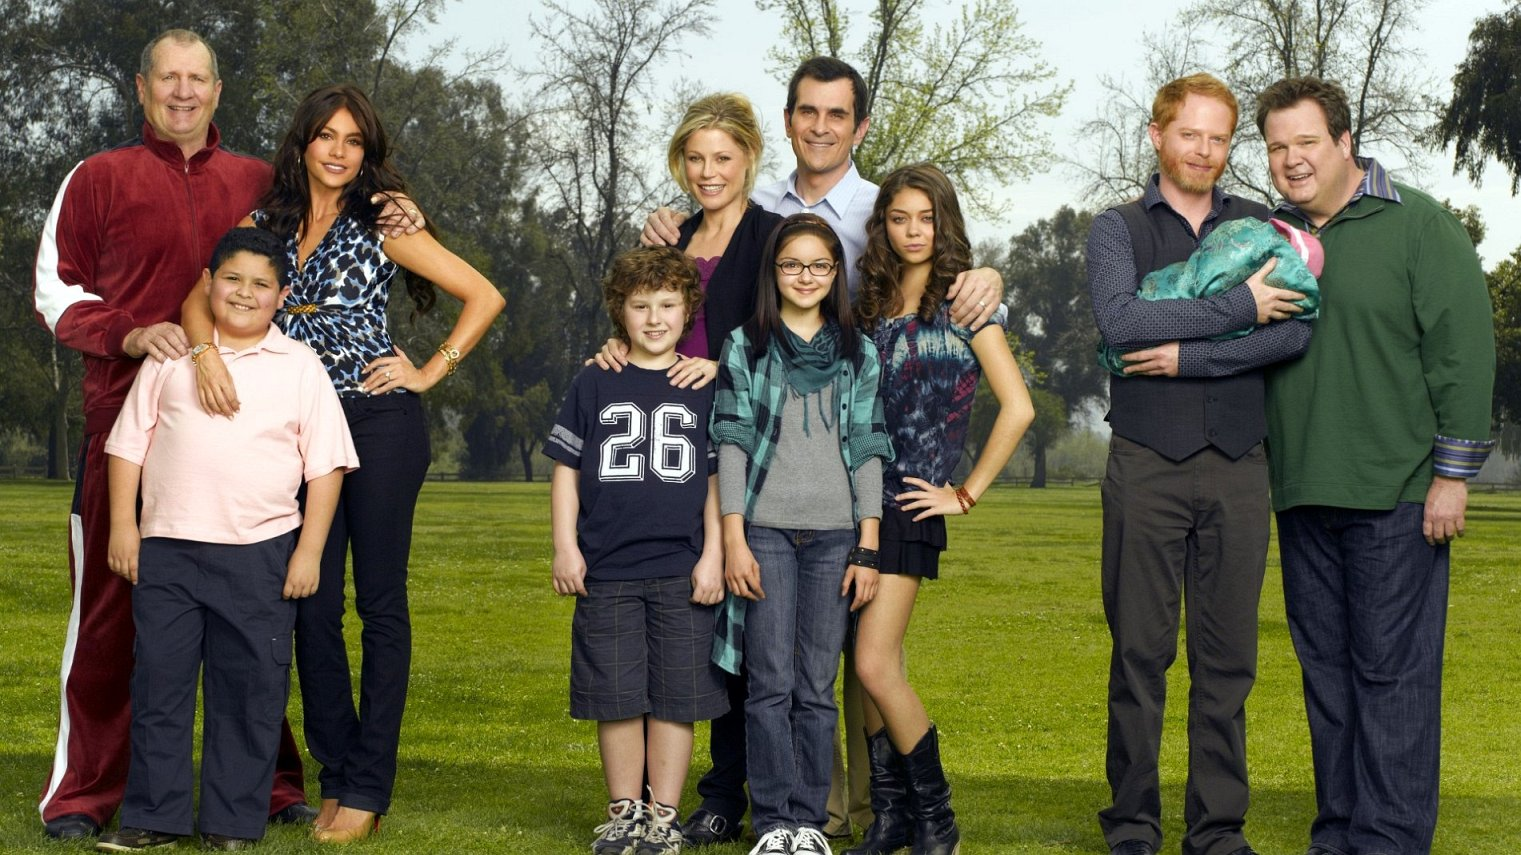 Modern Family S10 episode 10 watch online